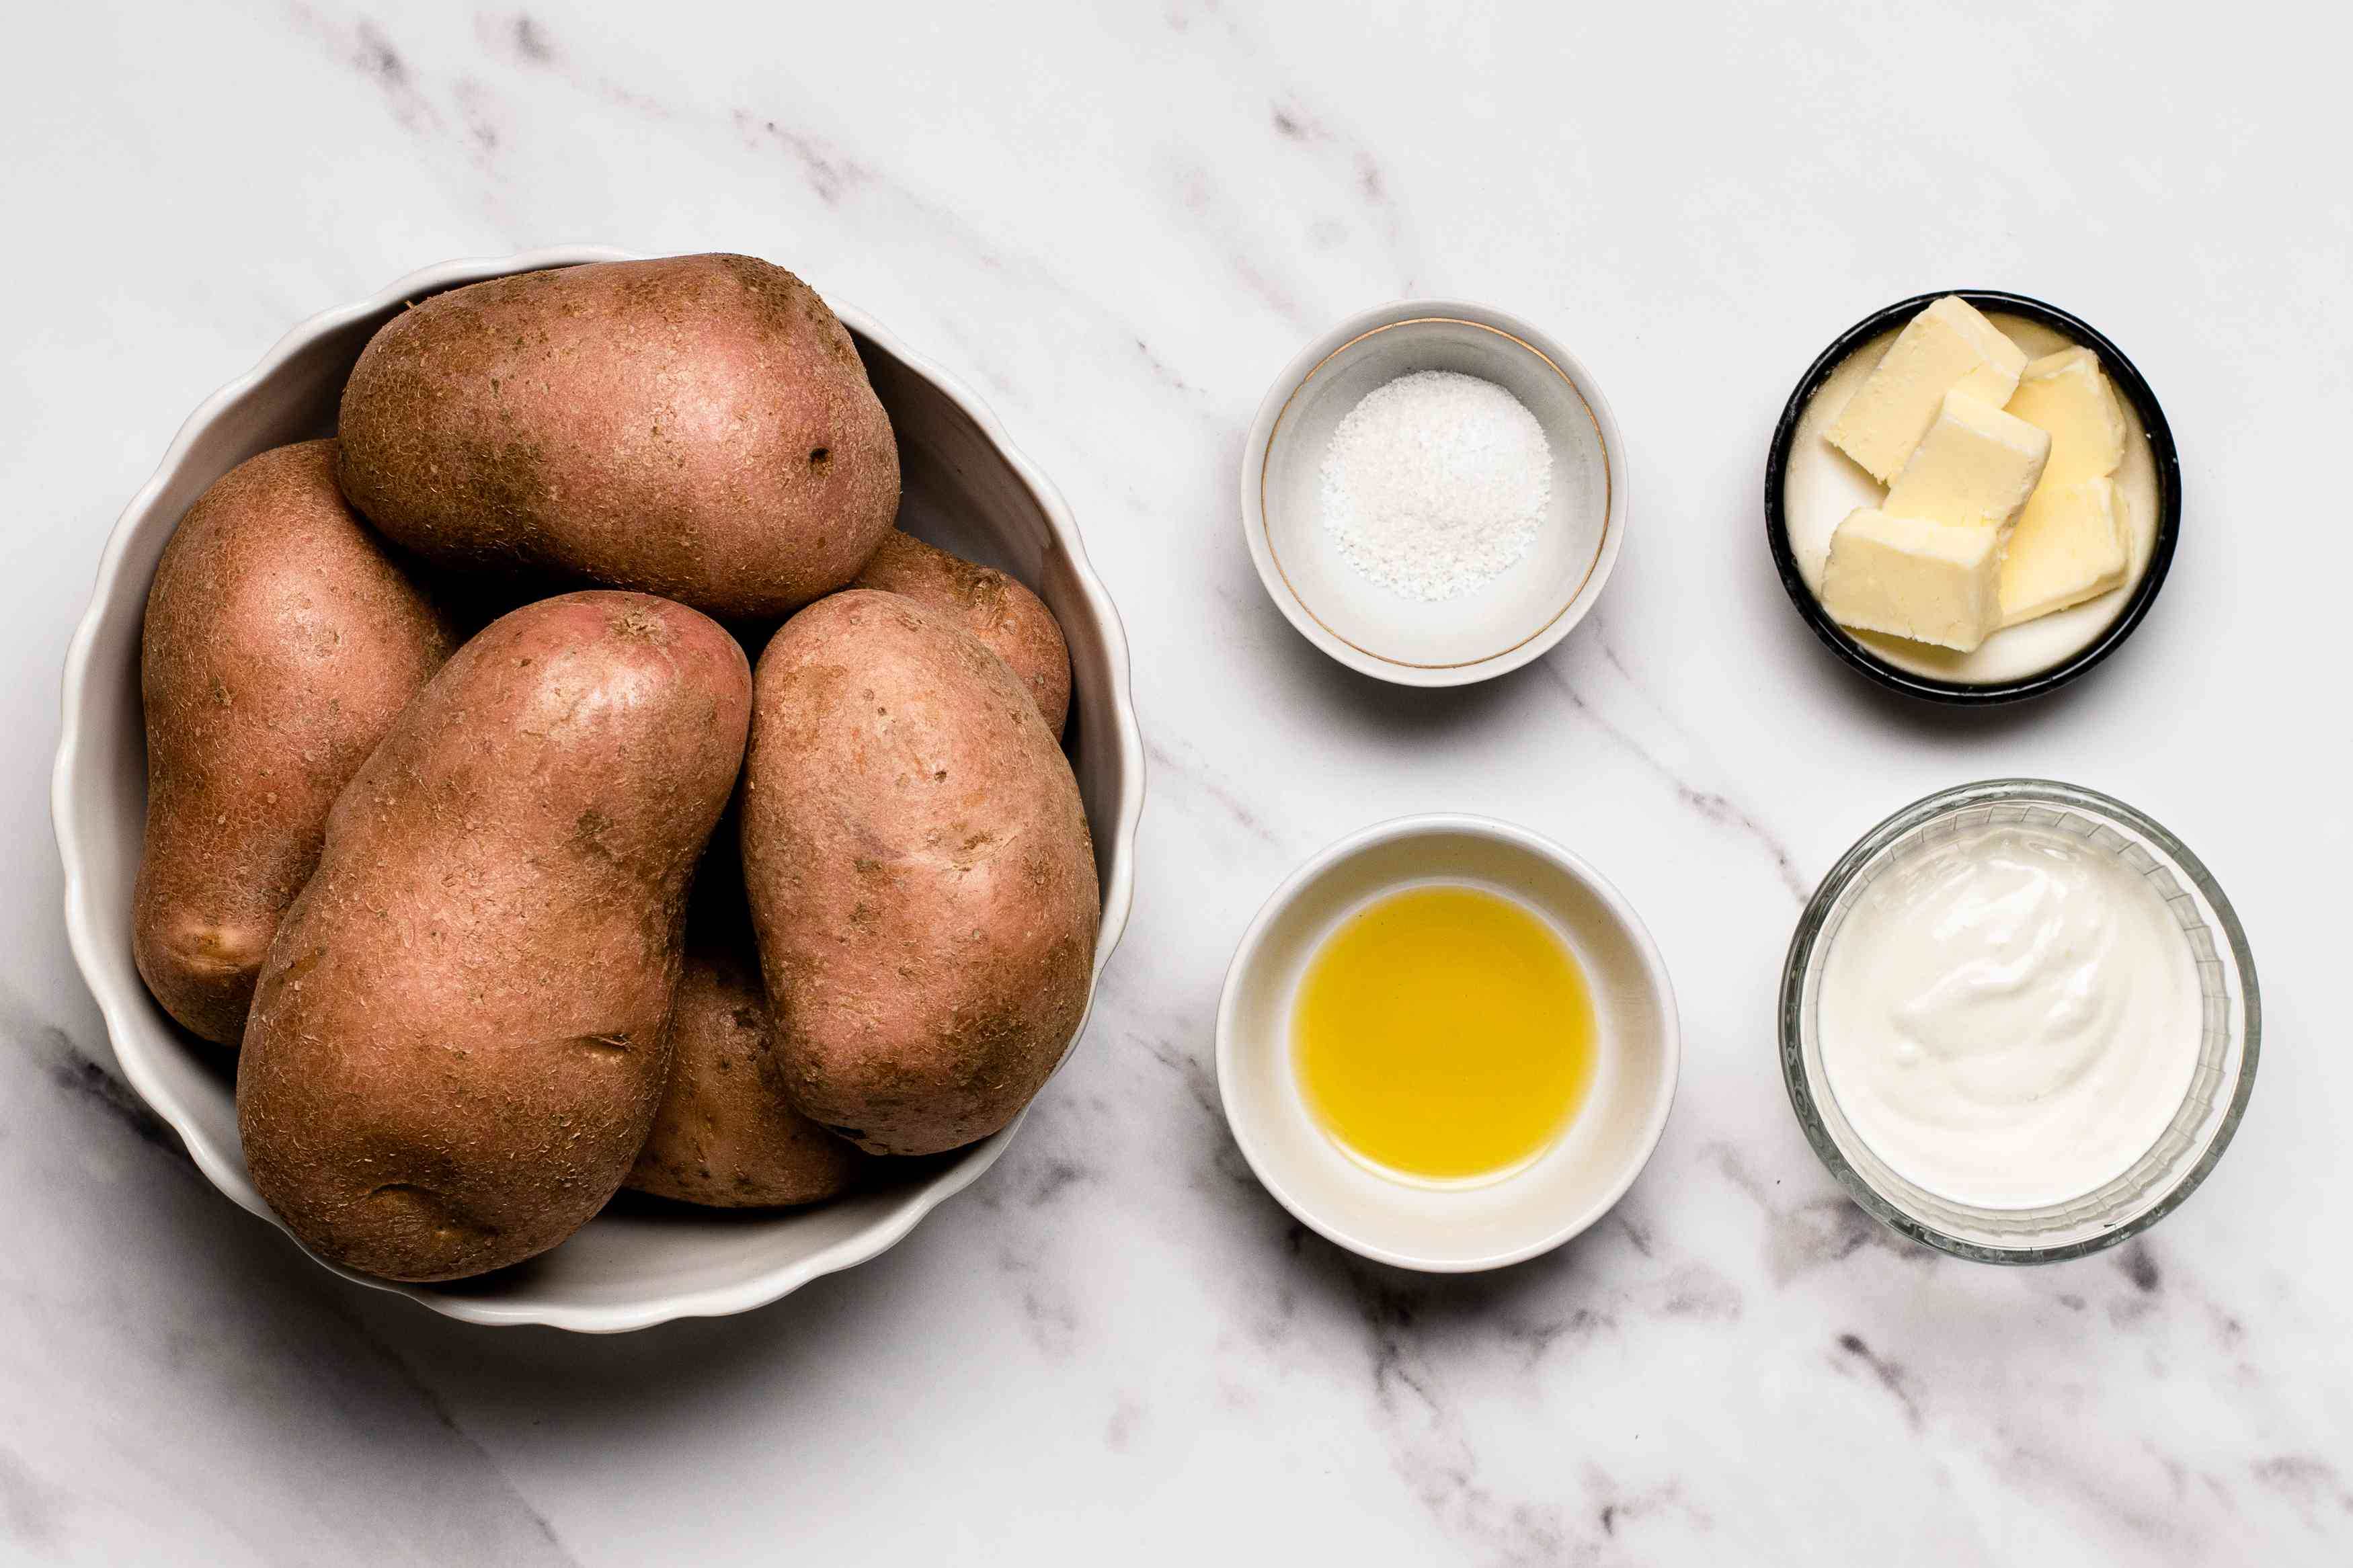 Perfect Baked Potatoes ingredients